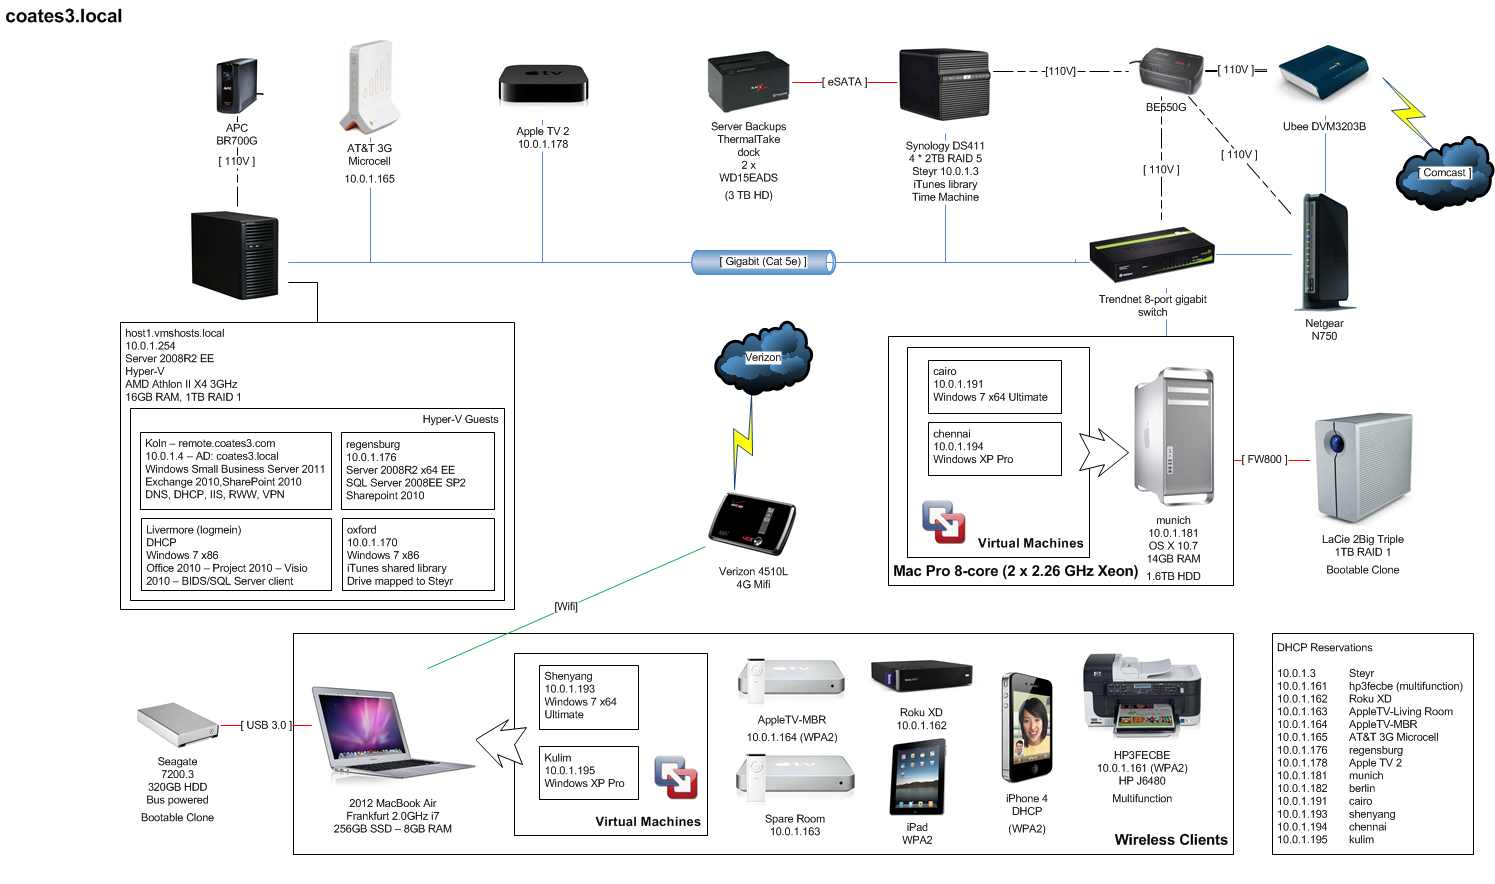 Show us your network page 8 macrumors forums coates network diagramg ccuart Images